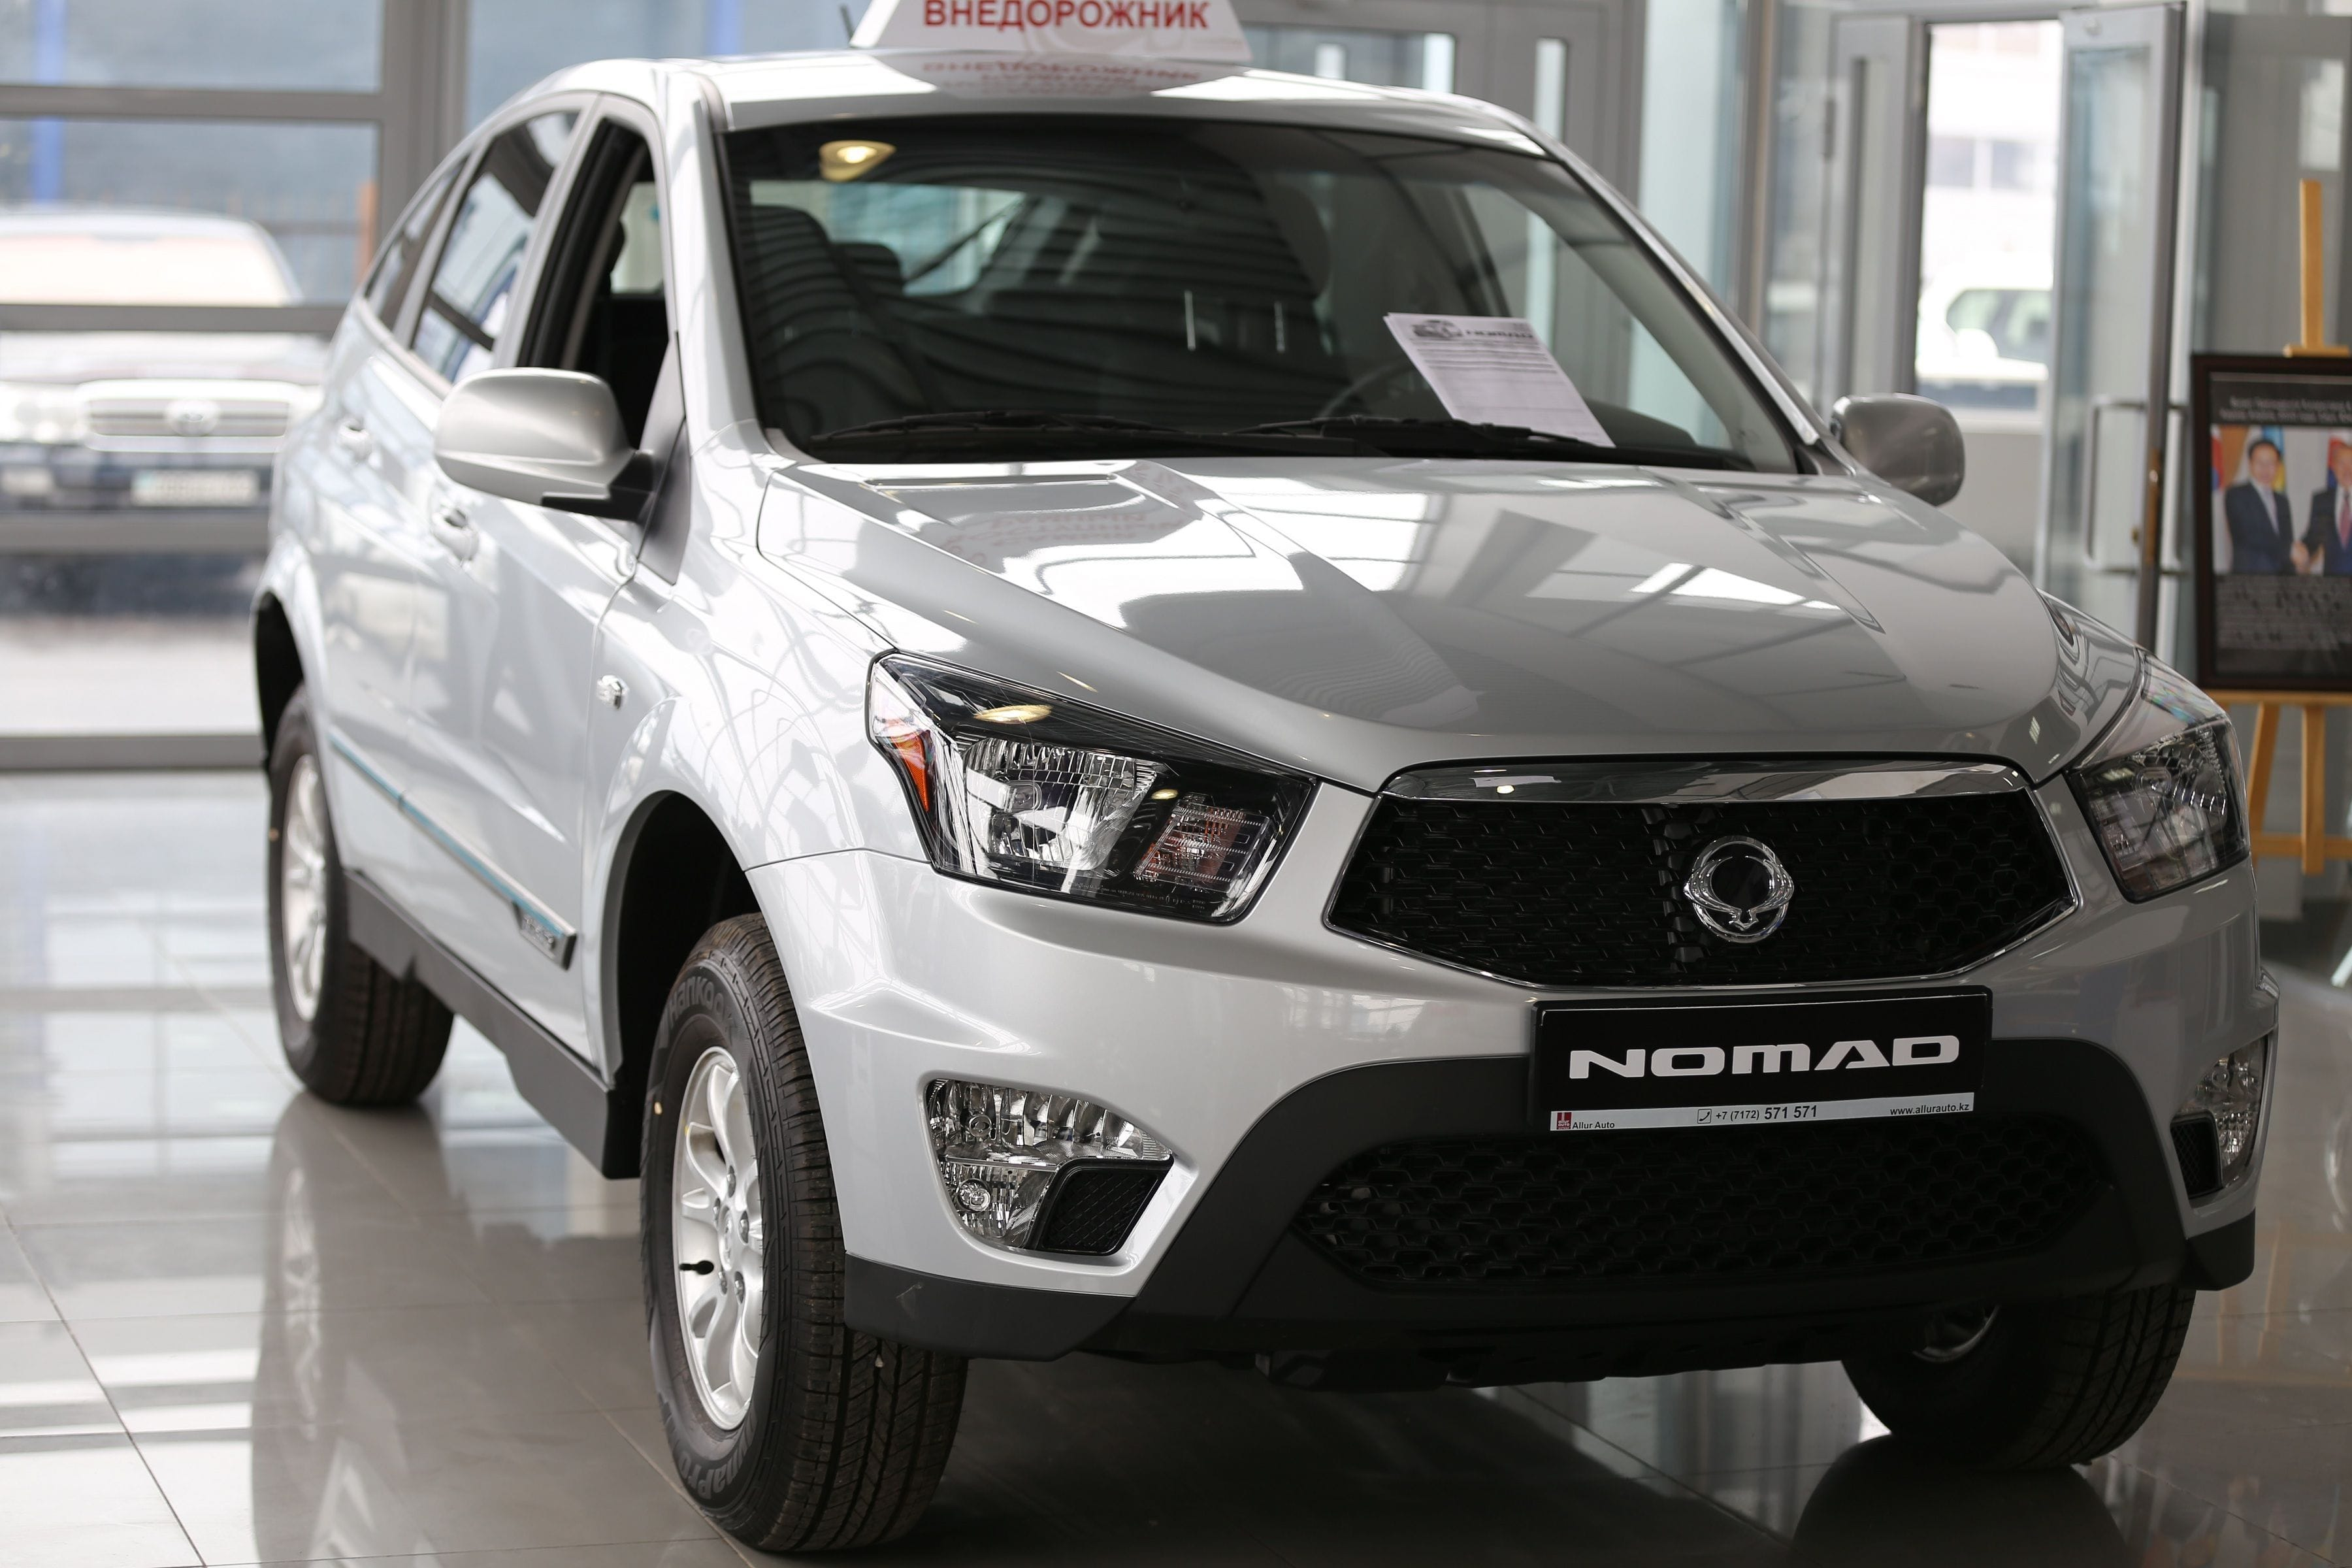 Ssang Yong Nomad Pictures